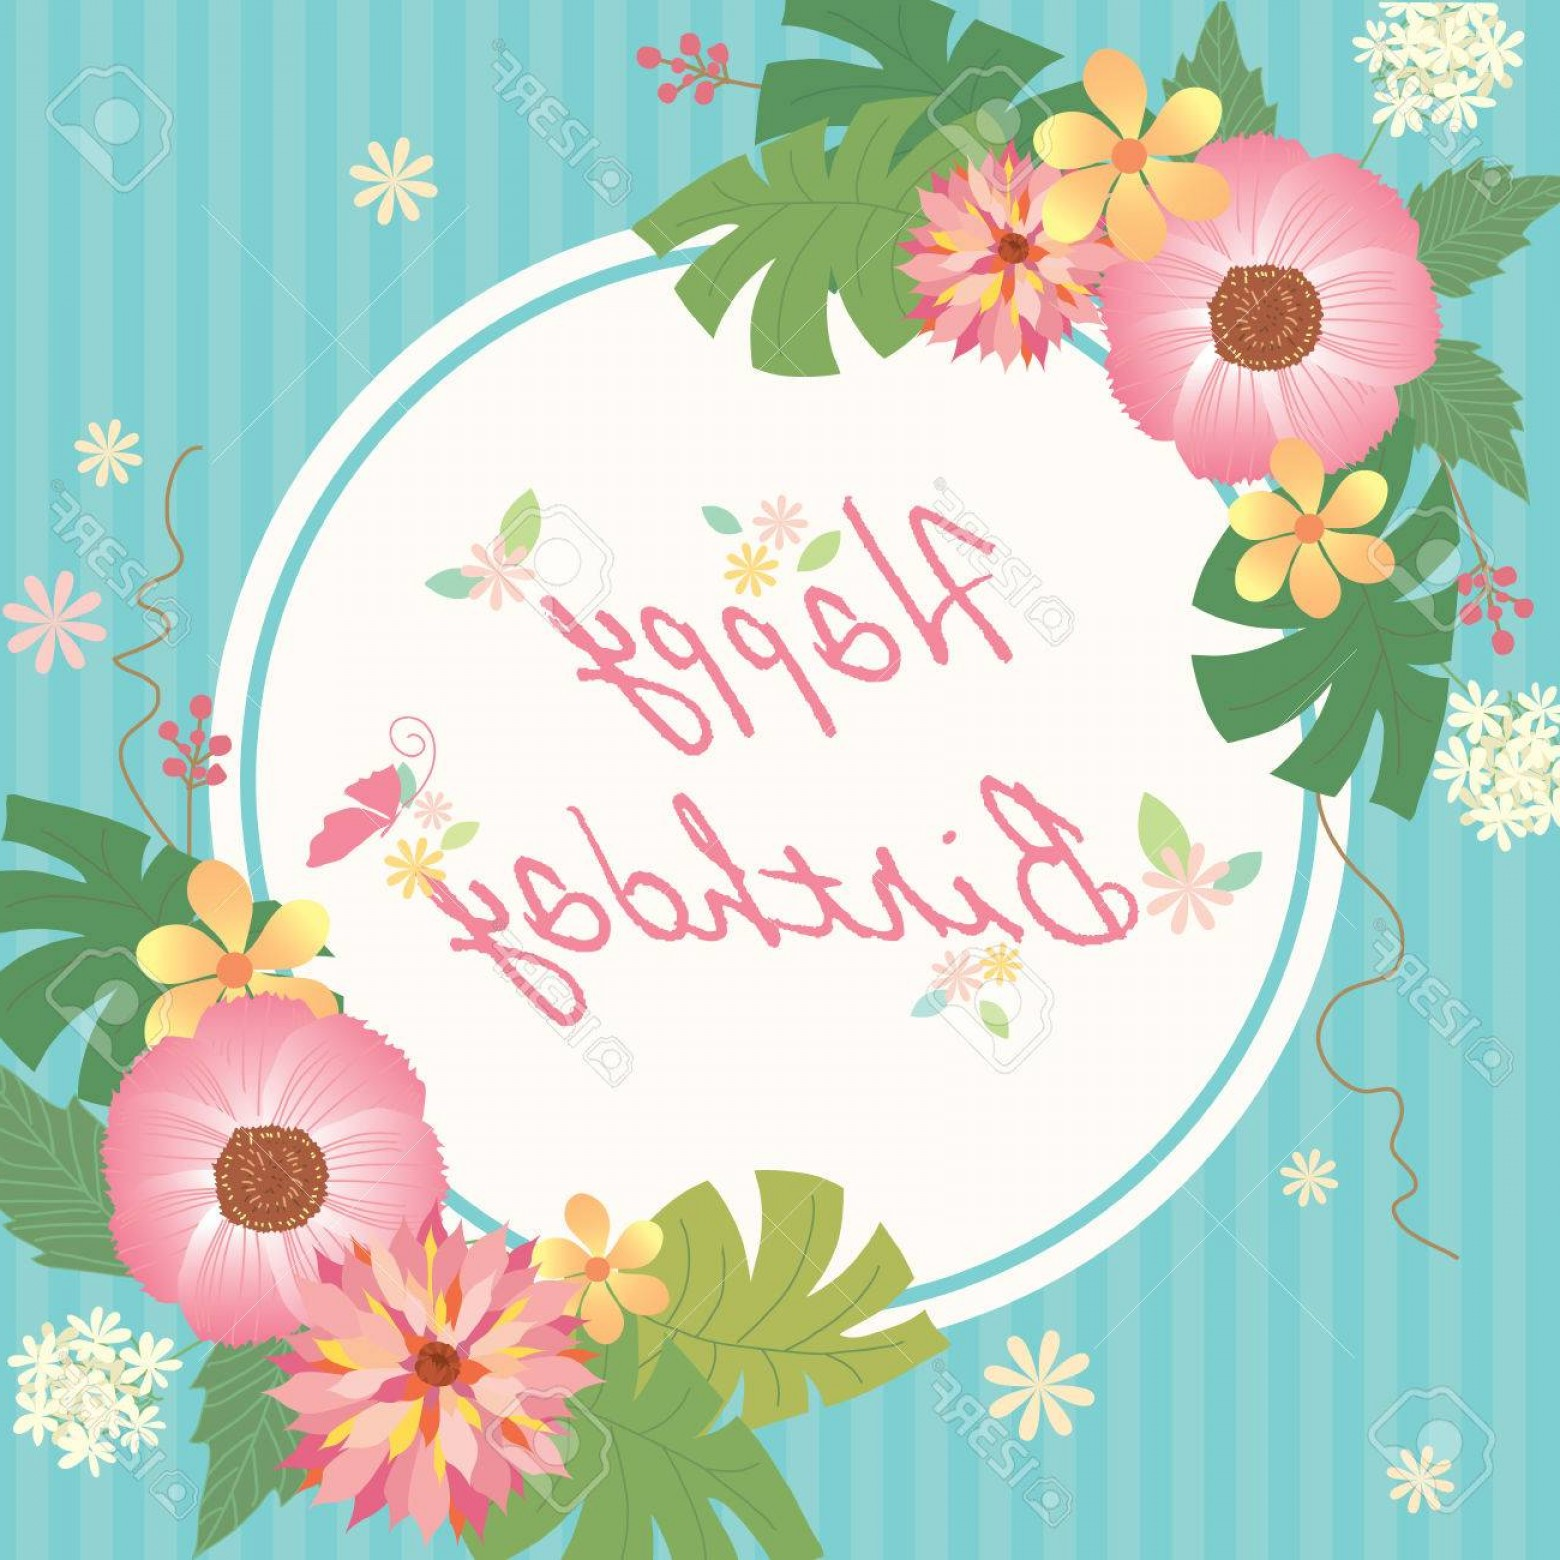 Birthday Card Vector Frame Designs: Photostock Vector Various Of Flowers Decoration With Border Frame For Happy Birthday Card On Aqua Blue With Stripe Bac